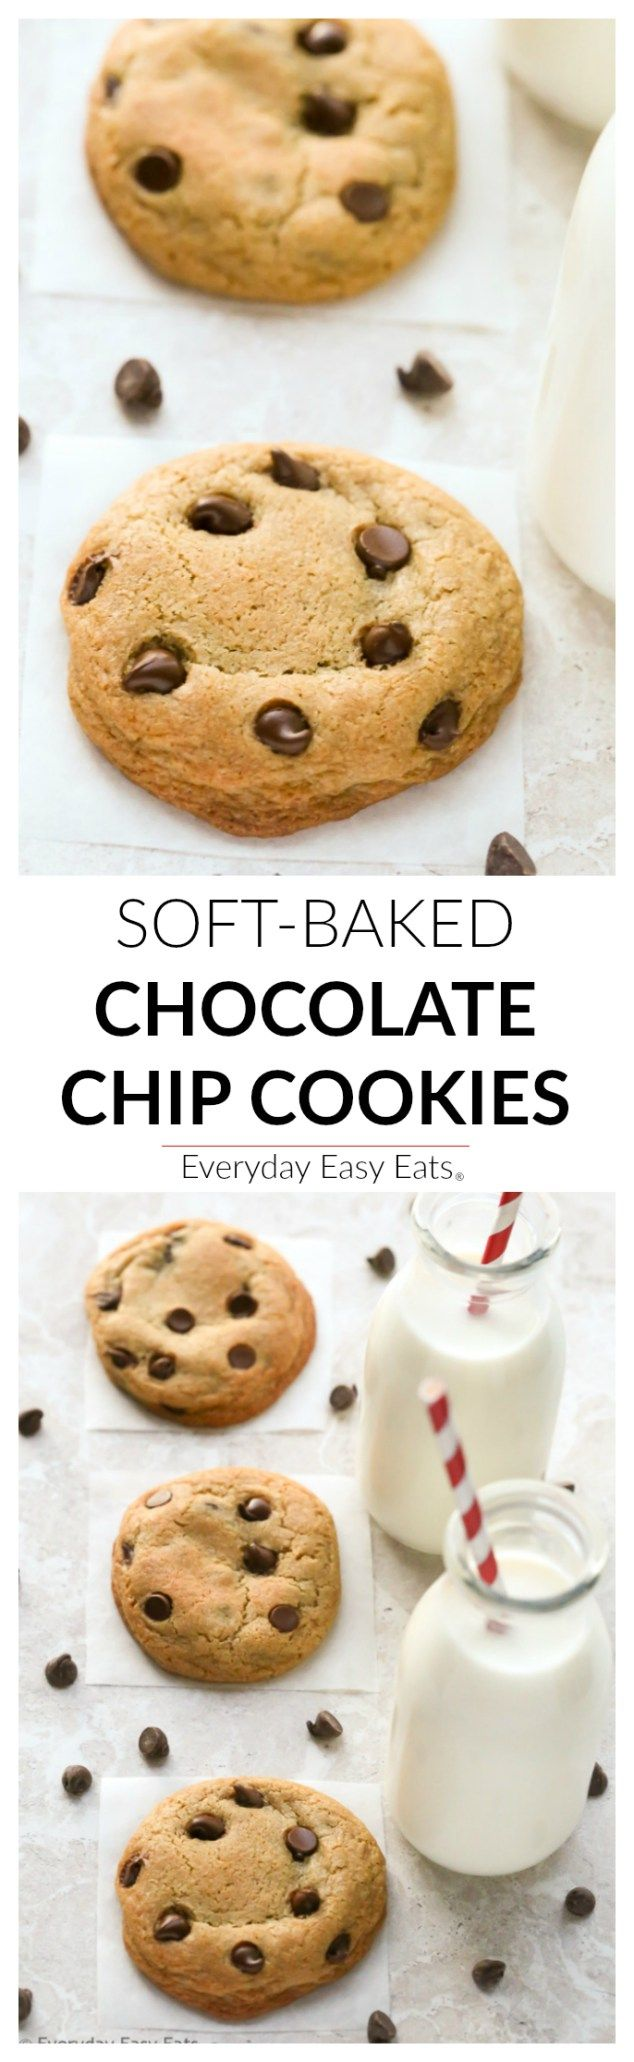 The only recipe for chocolate chip cookies you will ever need! Soft, chewy and loaded with chocolate chips!